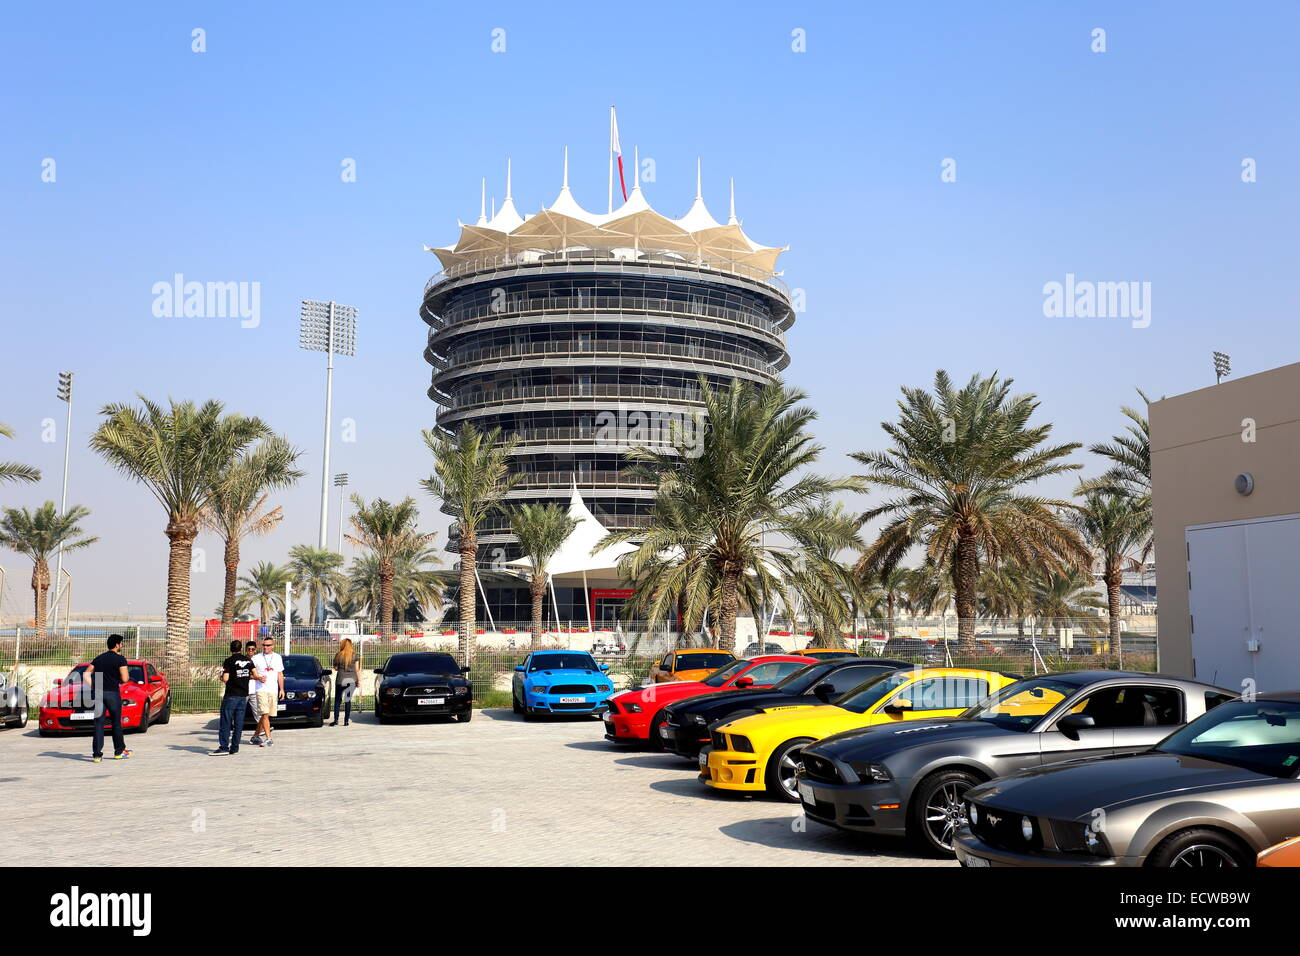 Parade of Ford Mustangs in front of the VIP tower at the Formula 1 circuit, Sakhir, Kingdom of Bahrain - Stock Image